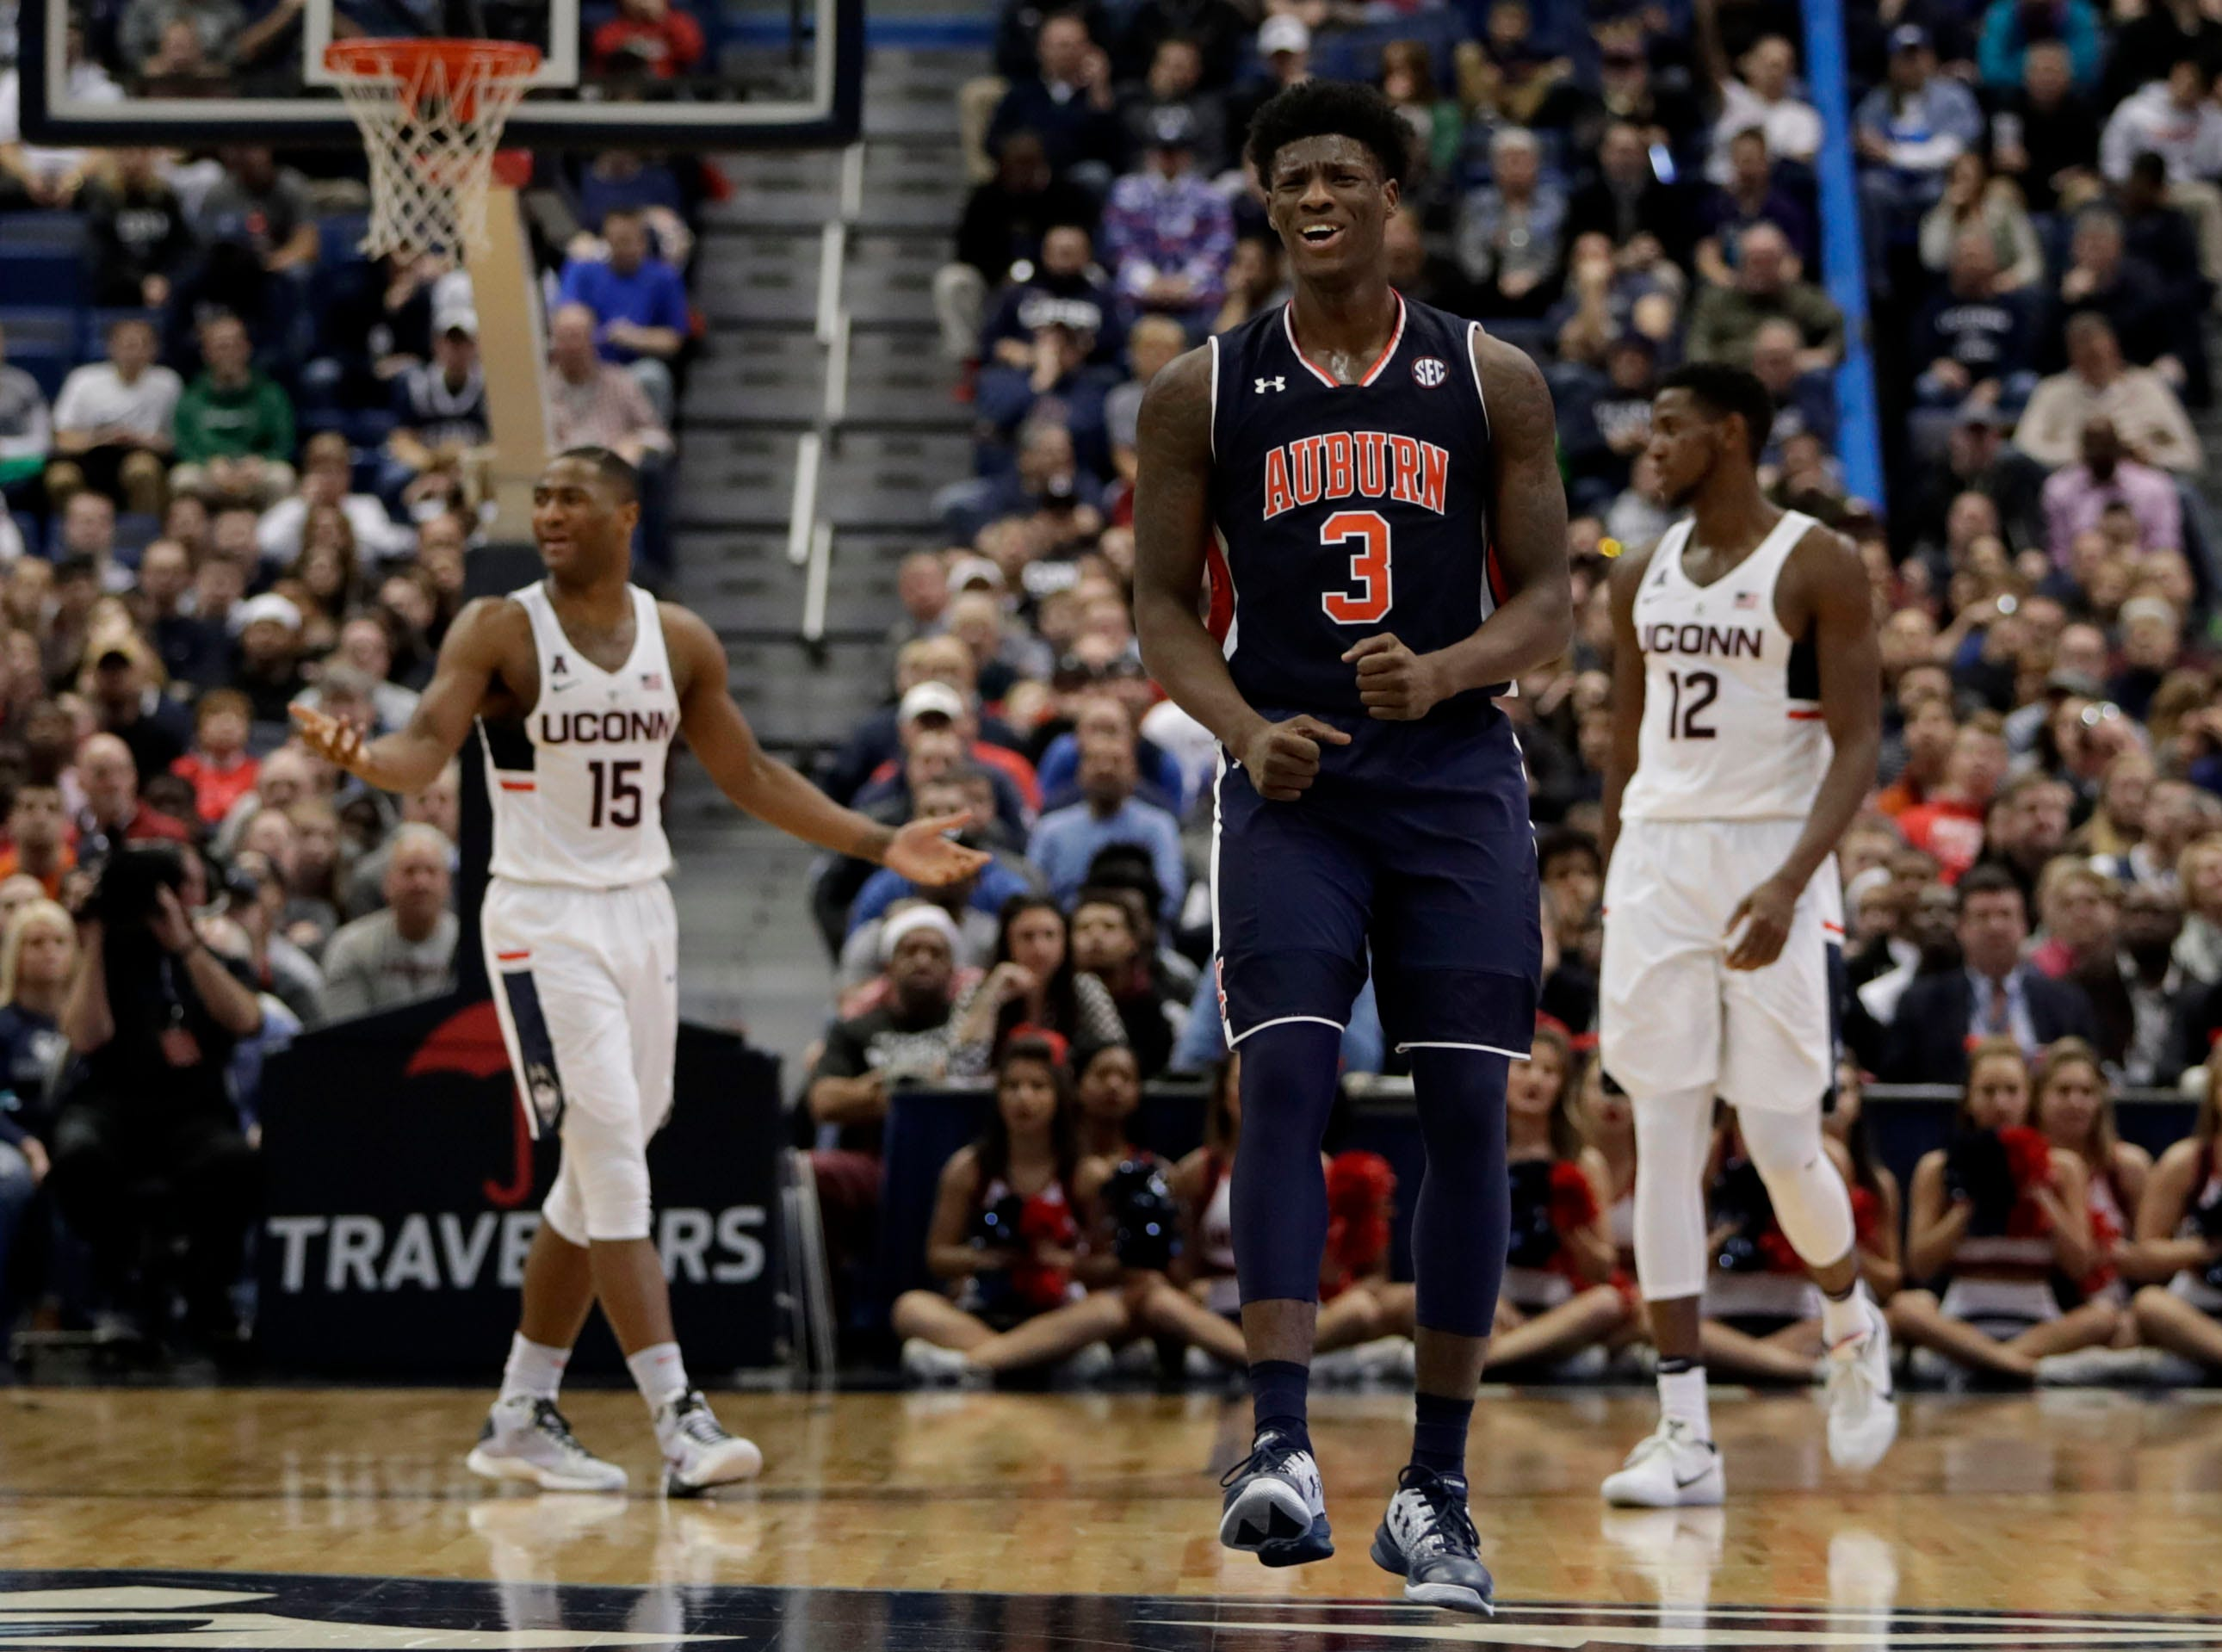 Dec 23, 2016; Hartford, CT, USA; Auburn Tigers forward Danjel Purifoy (3) reacts to a play against Connecticut Huskies guard Rodney Purvis (15) in the second half at XL Center. Auburn defeated UConn in overtime 70-67. Mandatory Credit: David Butler II-USA TODAY Sports